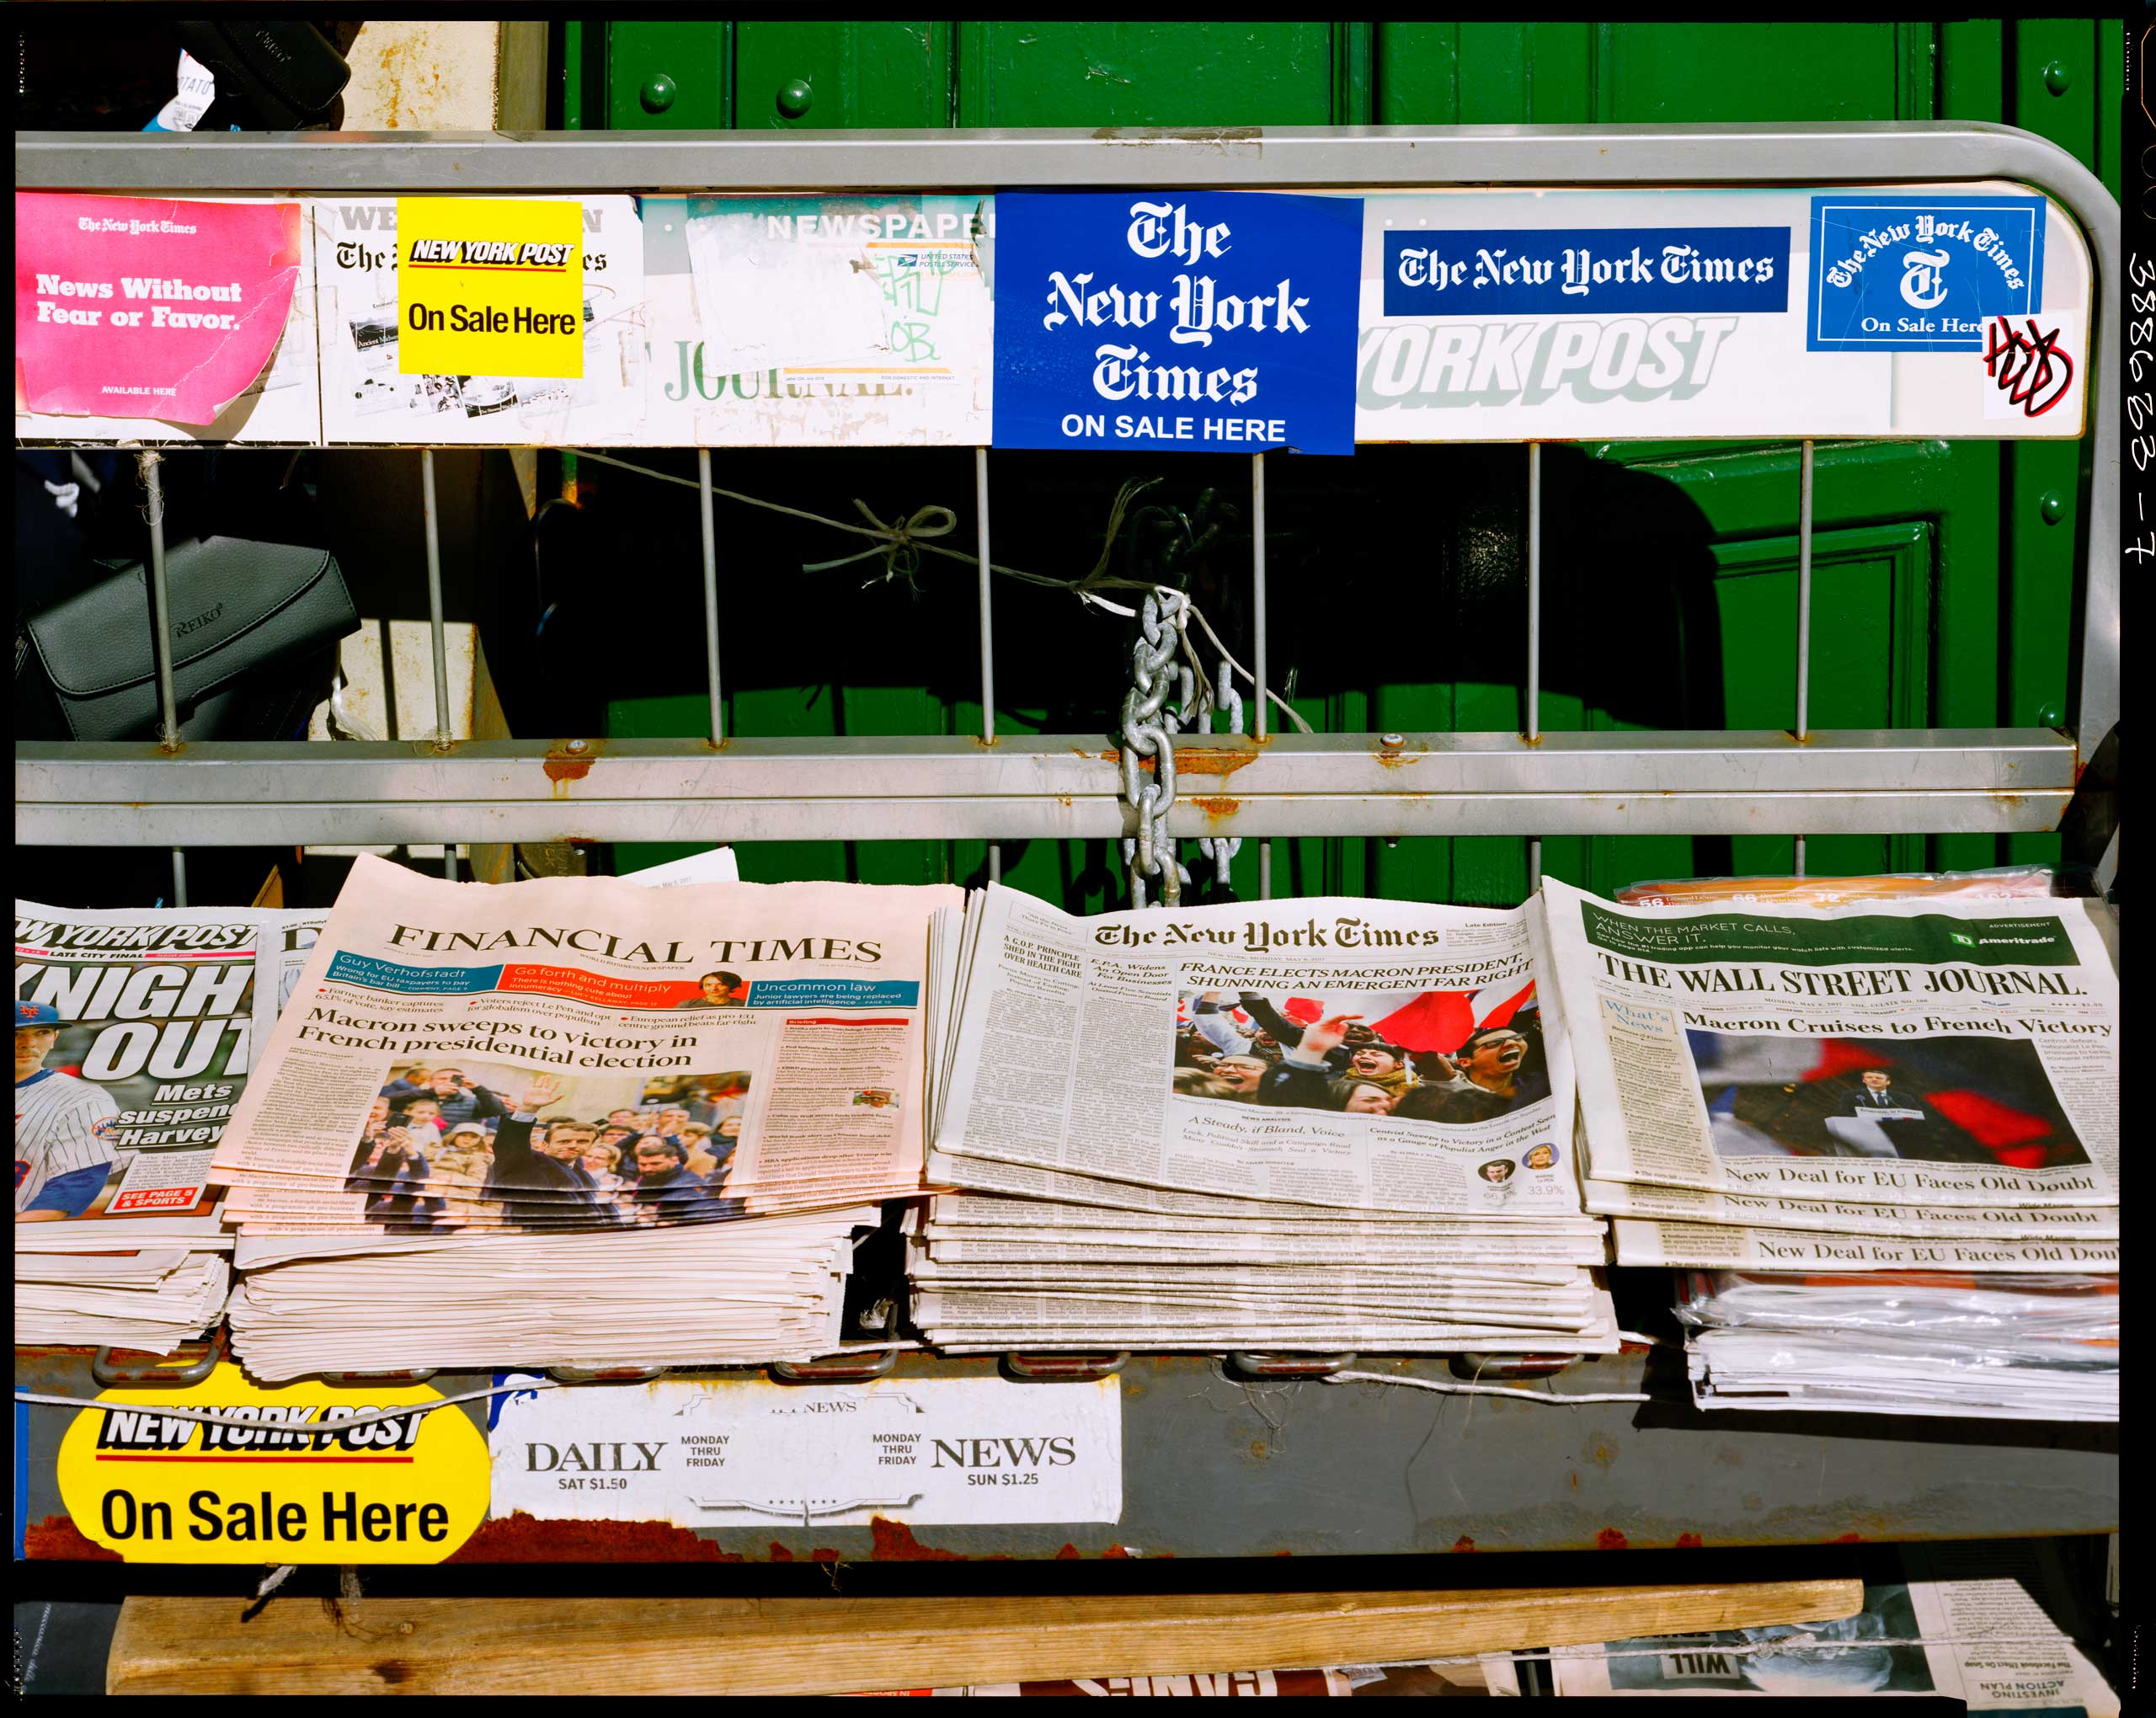 """Translation of caption from Liberation: May 8, 9 am, Union Square. It's one of the rare remaining newsstands in the city. This morning, even the New York Post's headline talks of the French election """"FRANCE'S NEW LEADER, MACRON: Oui did it!"""" For the New York Times, it's """"SHUNNING AN EMERGENT FAR RIGHT."""" France has elected Macron as its president while rejecting the emerging far right. Same story for the Wall Street Journal and the Financial Times: """"MACRON CRUISES TO FRENCH VICTORY"""" and """"MACRON SWEEPS TO VICTORY"""". Macron sails to a victory and wins the presidential election. The city is in a good mood. It's chilly out, but the sun is shining."""